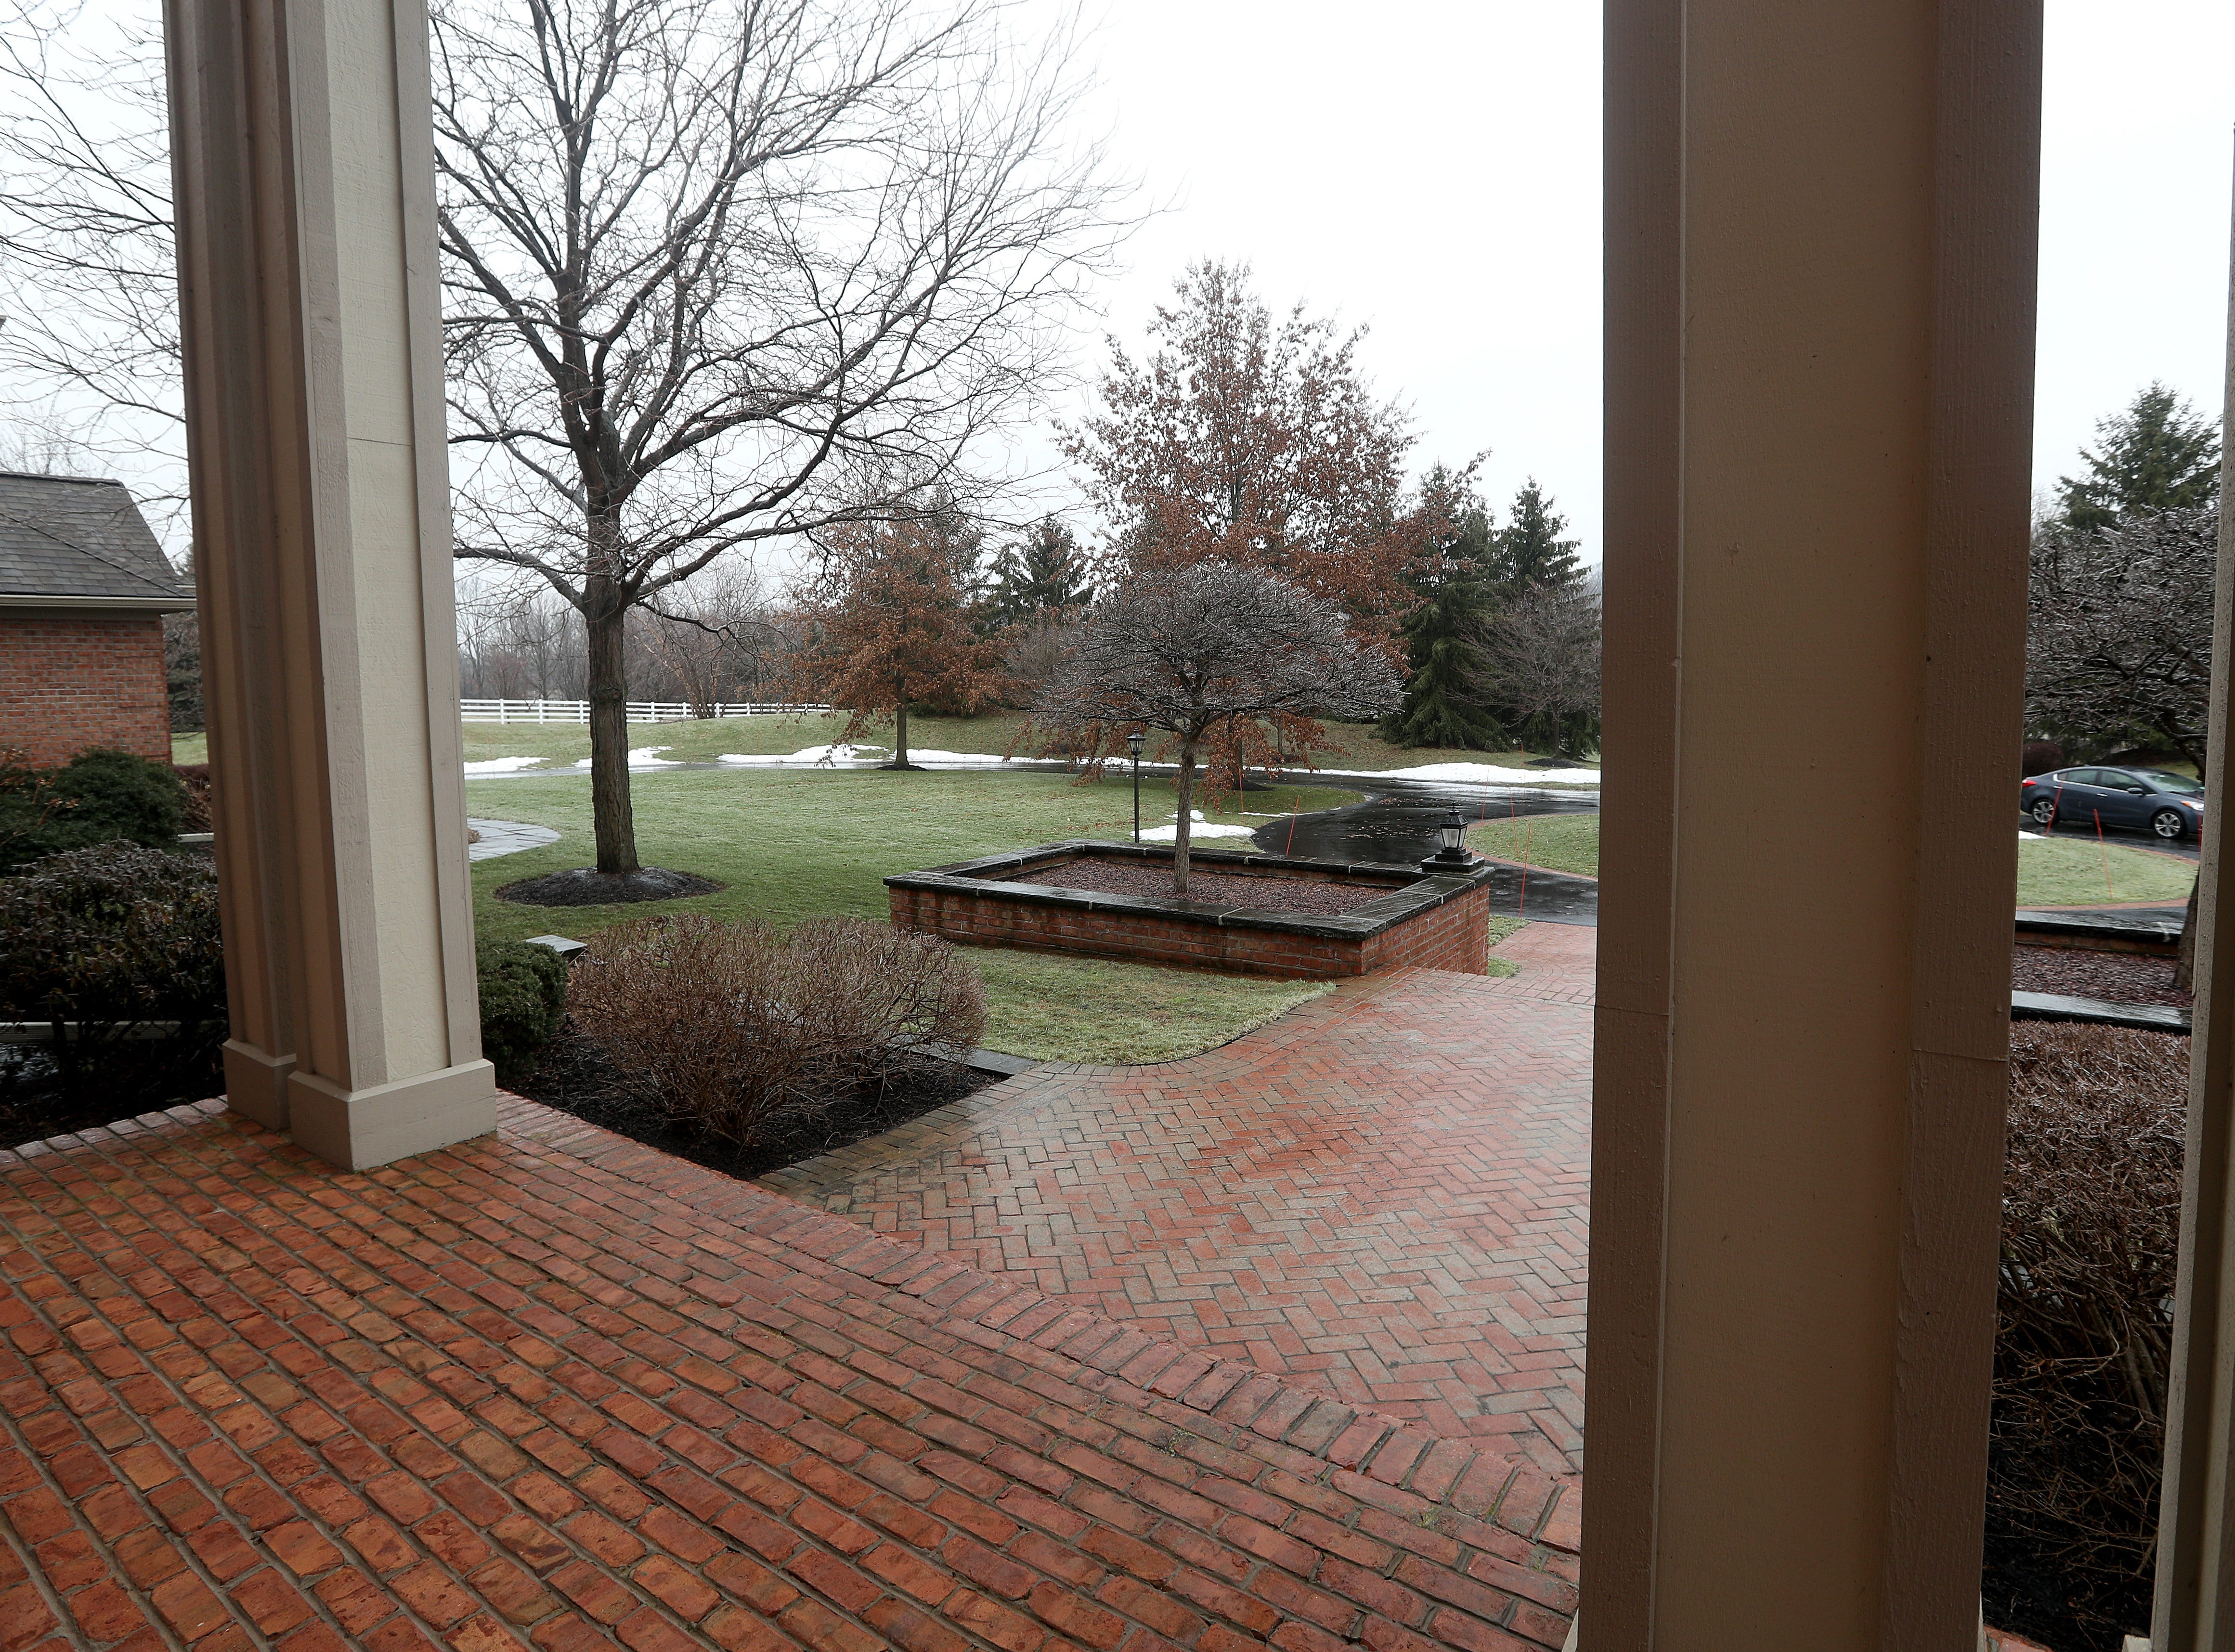 Looking back over the front yard from the main entrance.